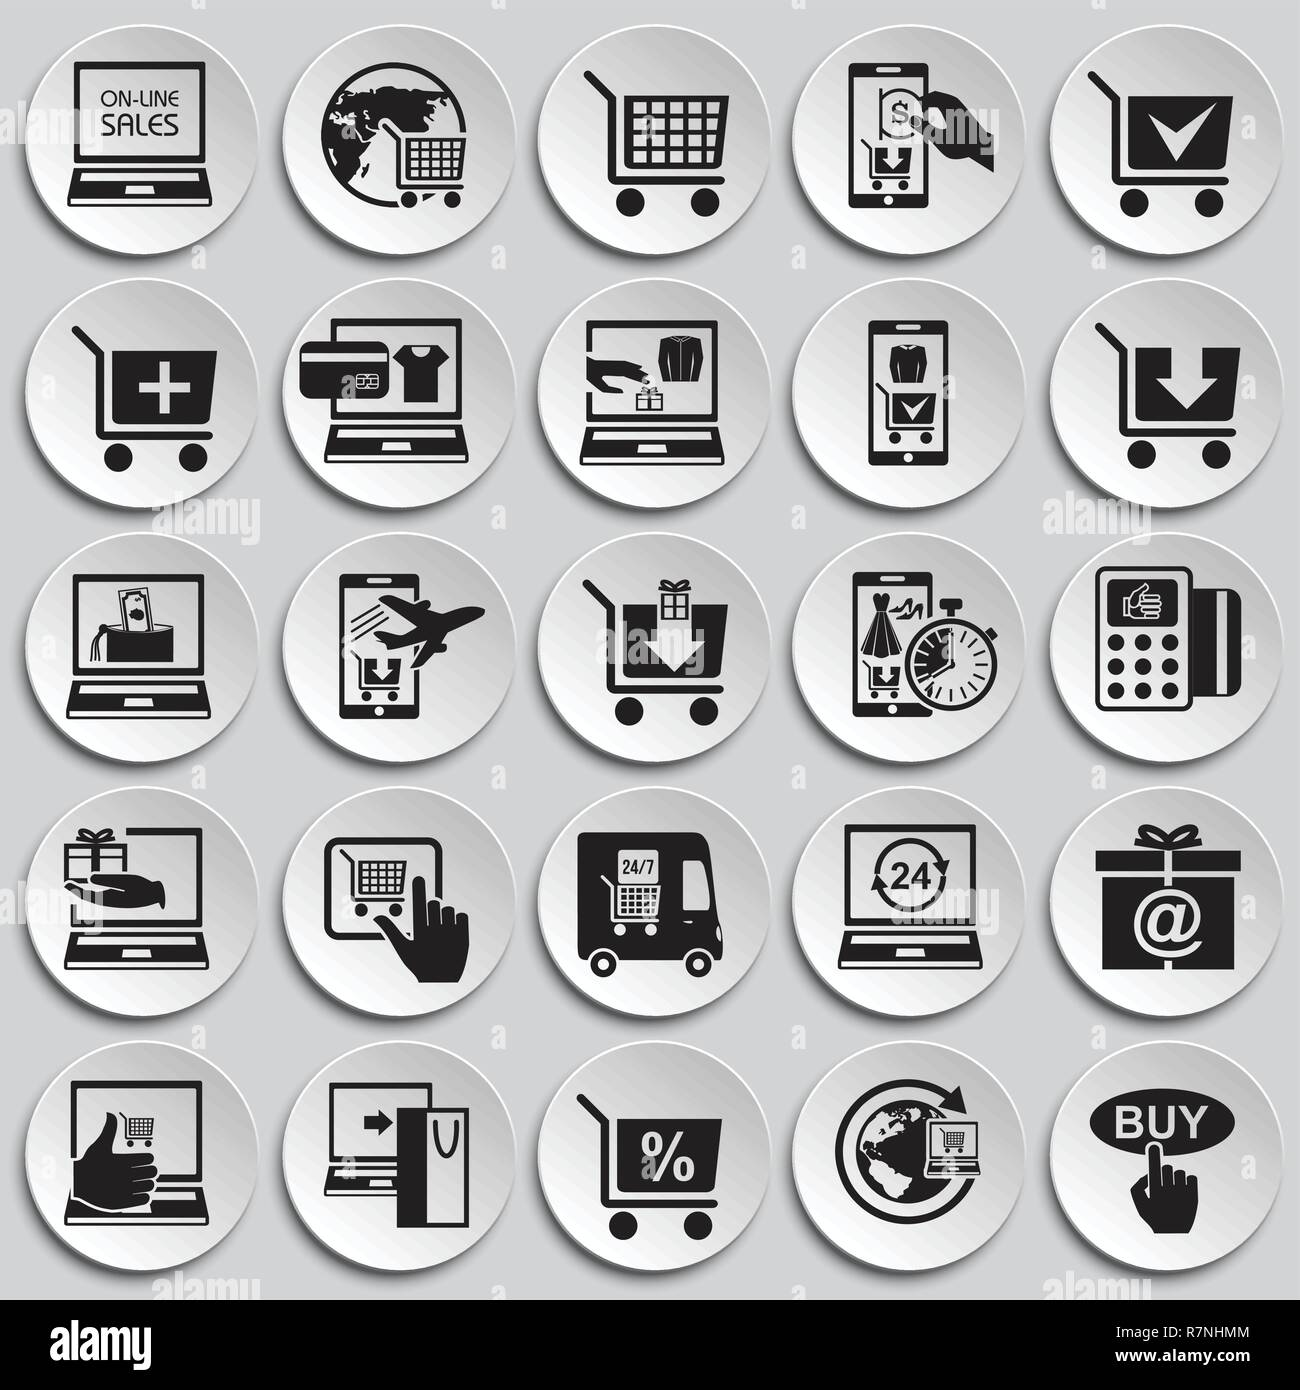 Online shopping icons set on plates background for graphic